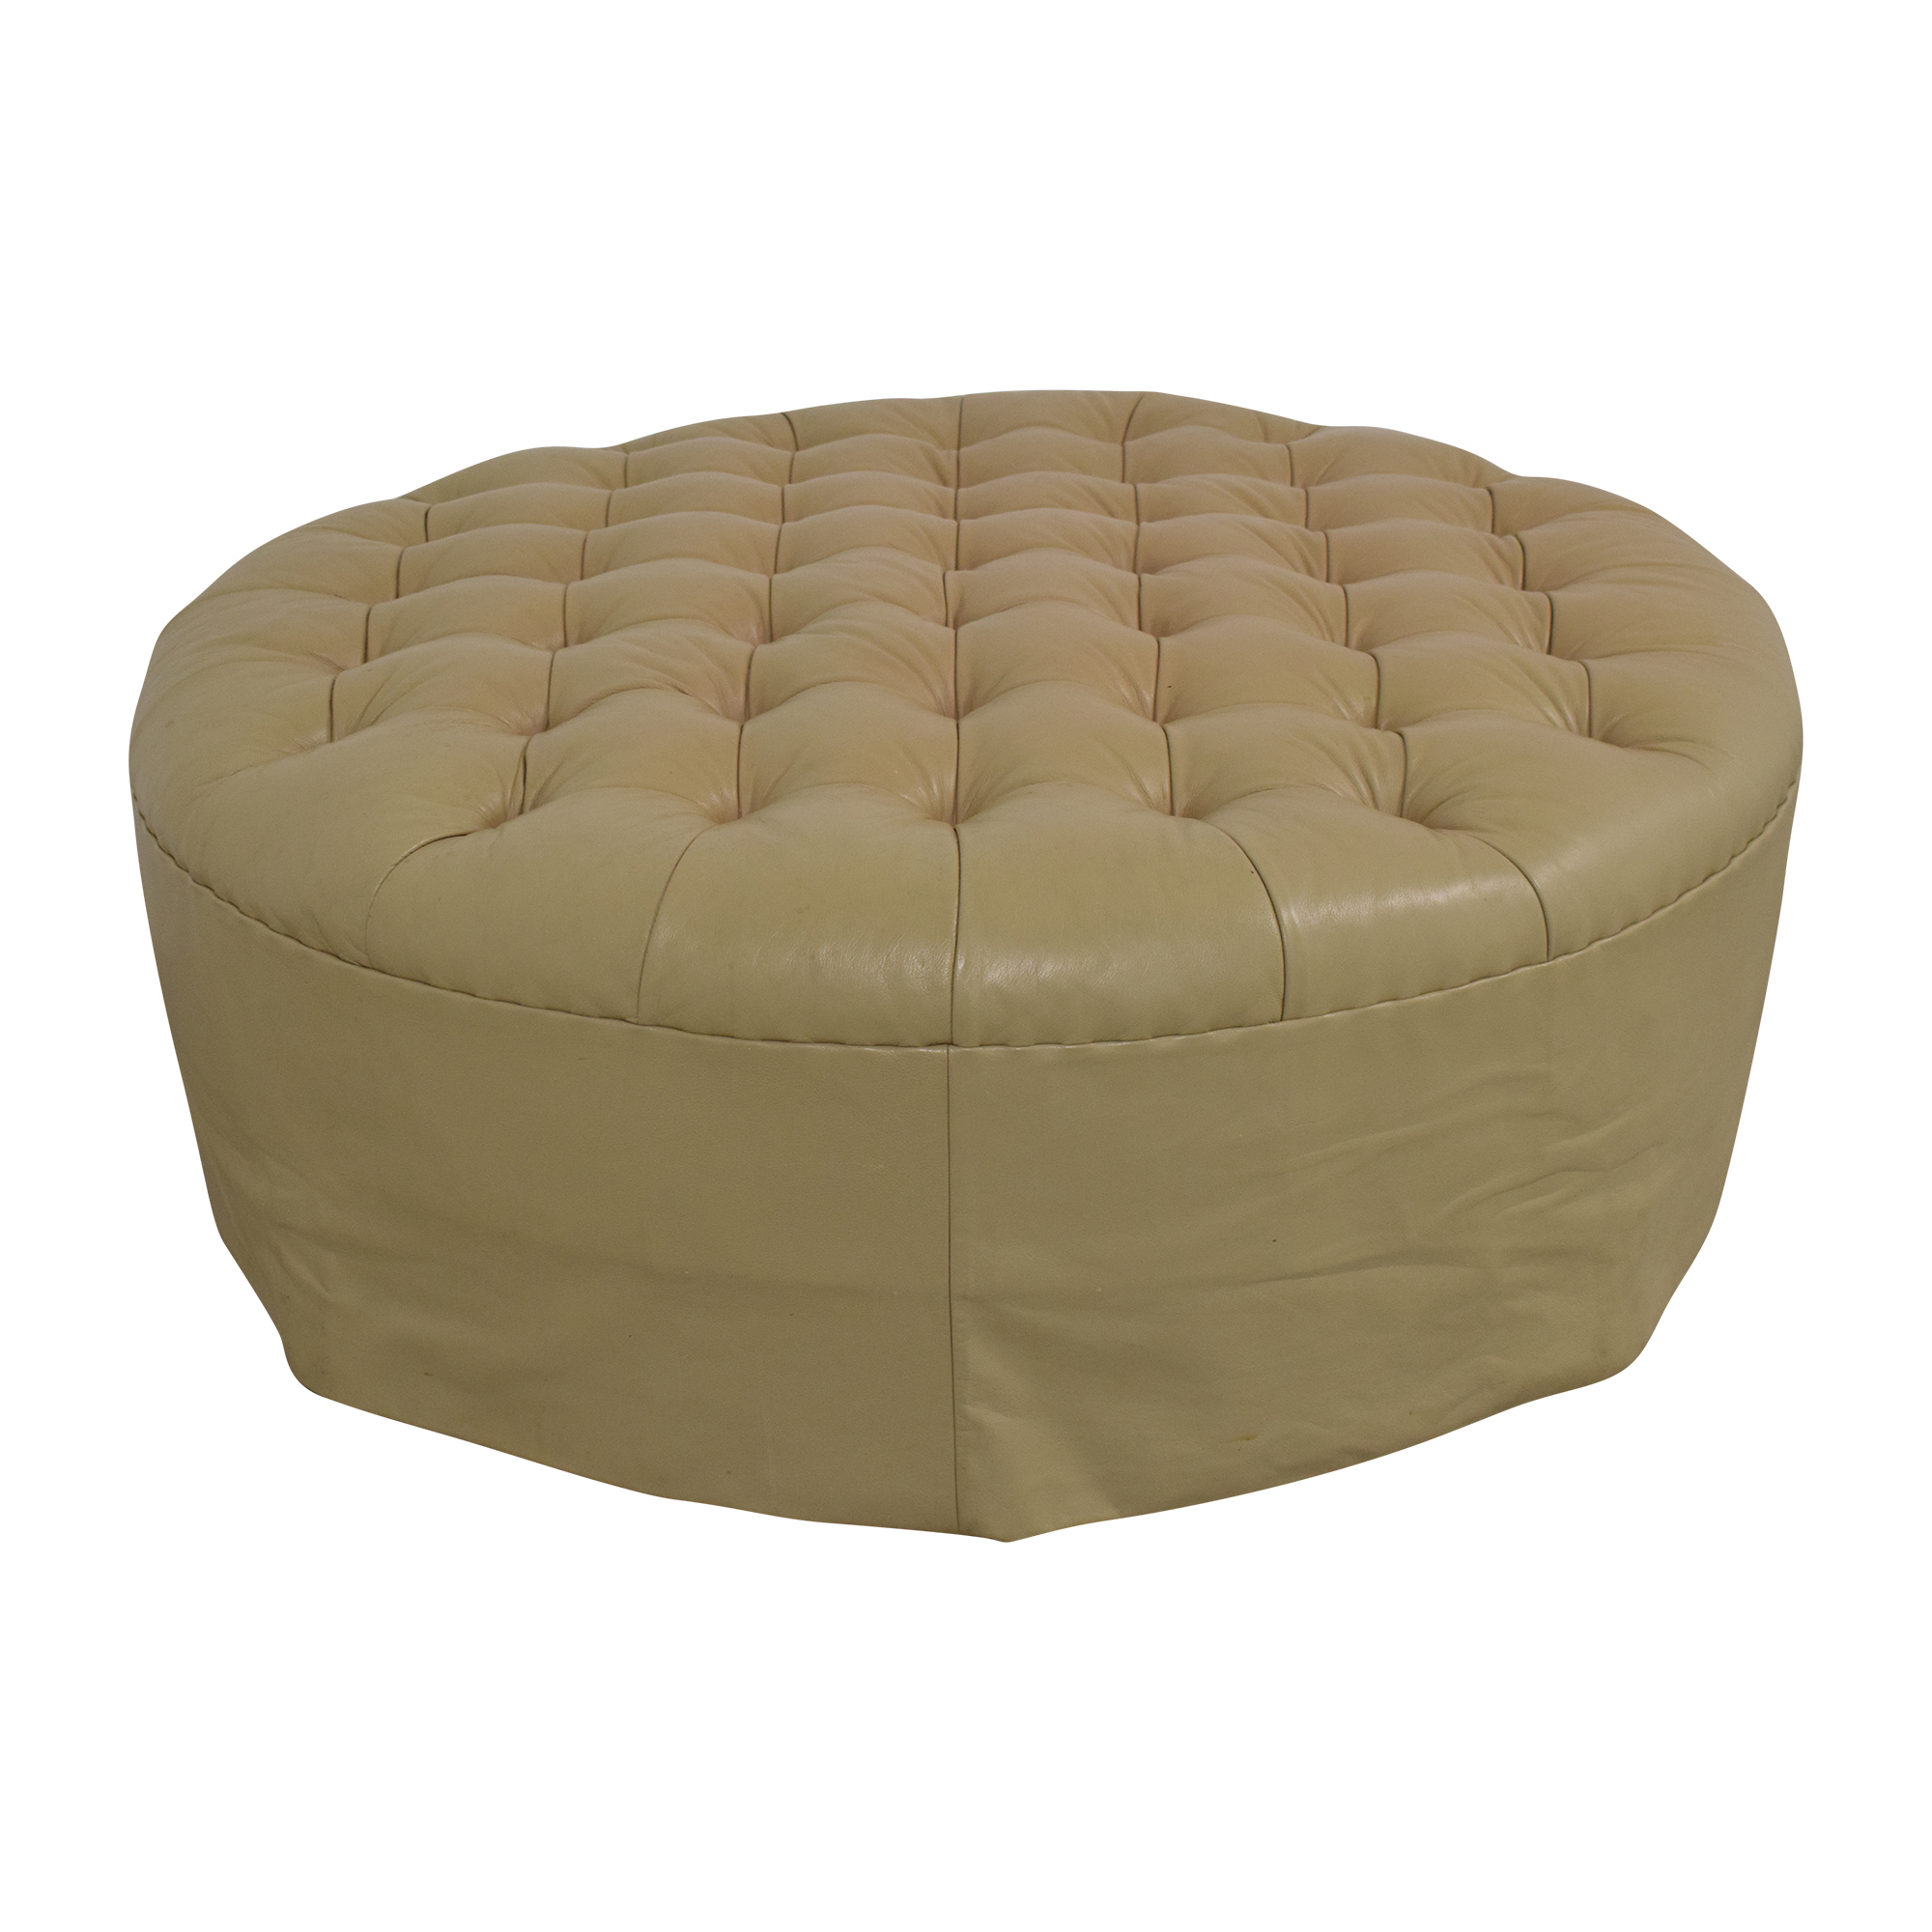 Vicente Wolf Vicente Wolf Round Tufted Ottoman nj